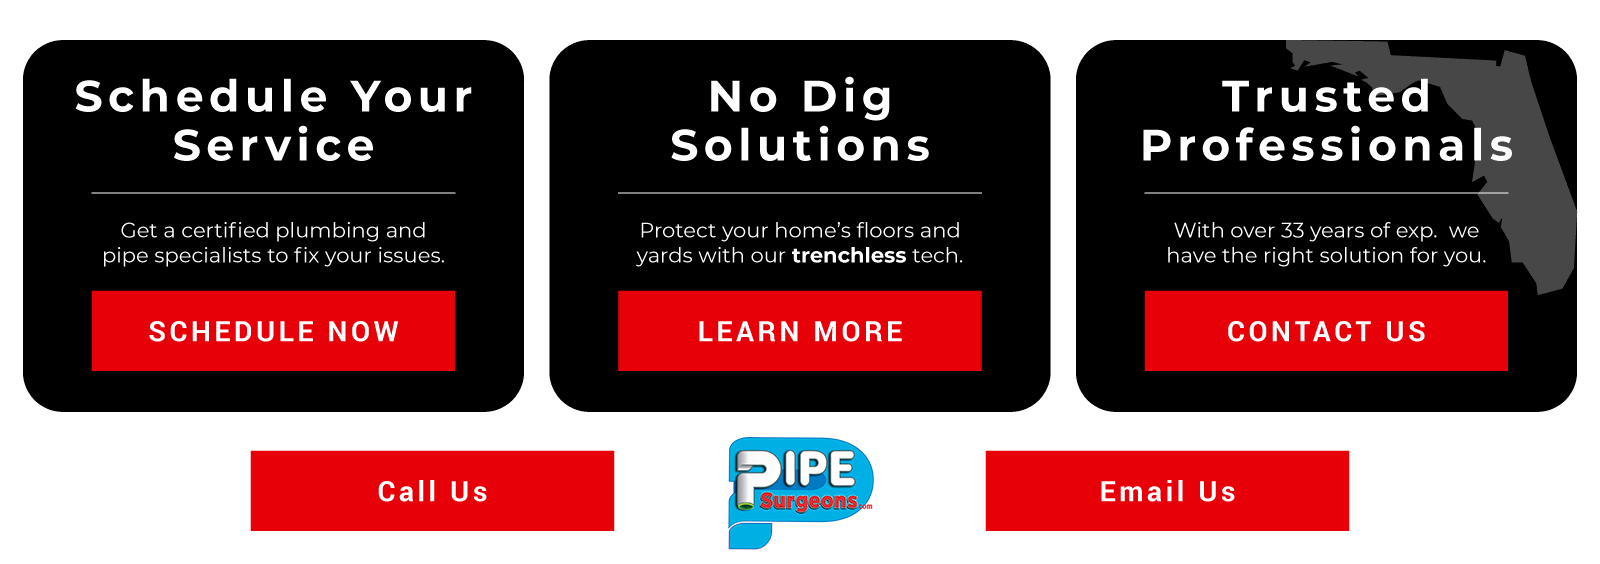 Drain cleaning sewer pipe surgeons Florida